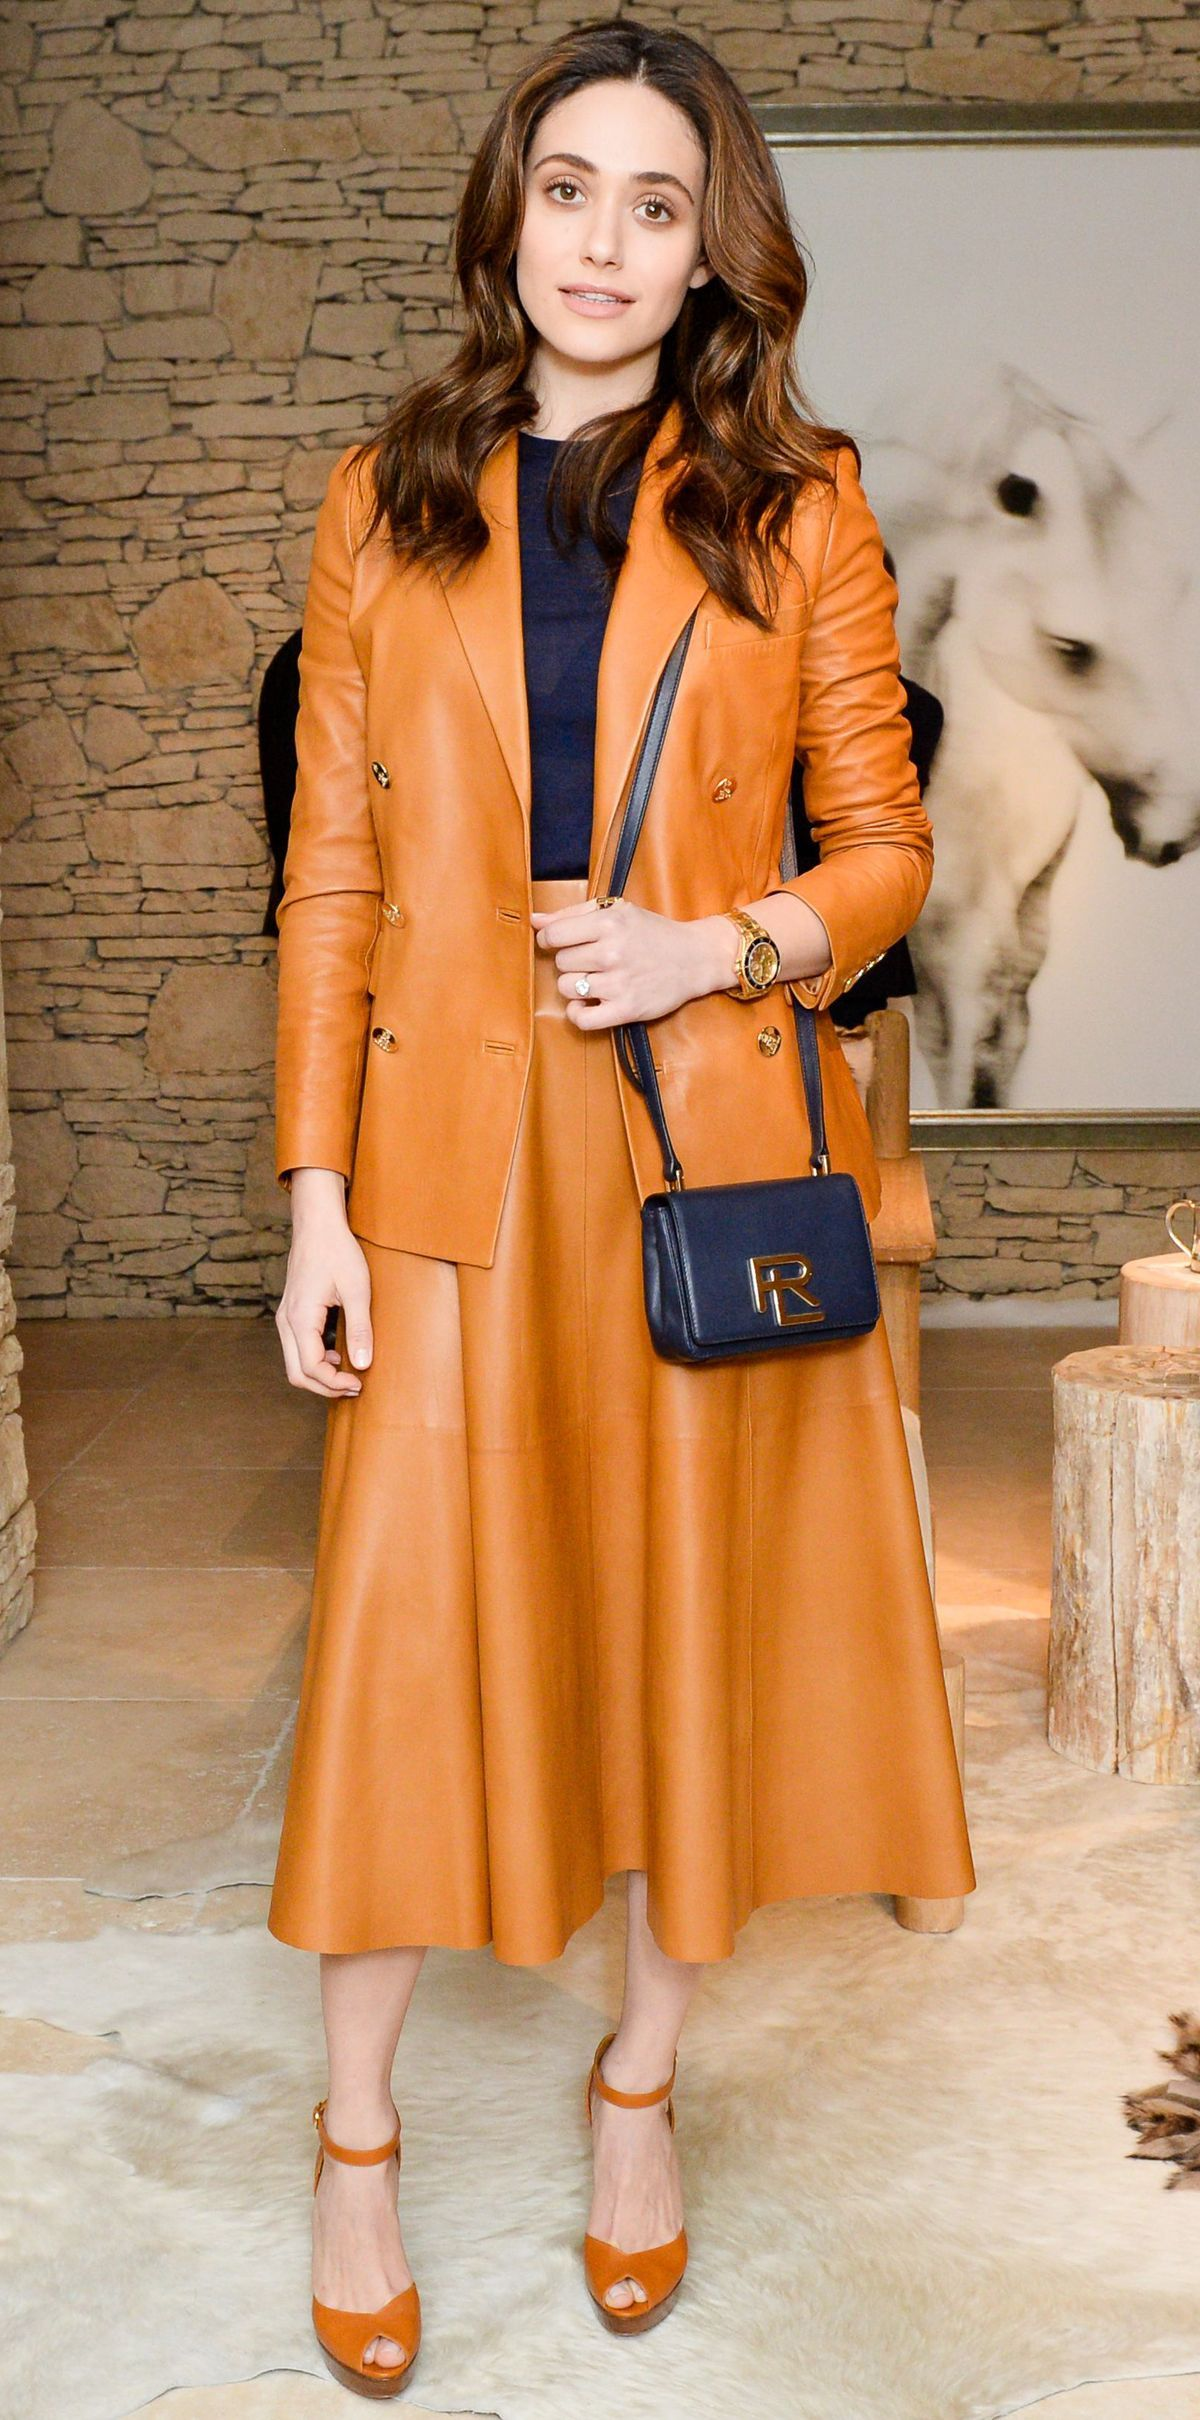 Emmy Rossum did warm-weather leather right at Ralph Lauren Home's Instagram launch. Clad in head-to-toe Ralph Lauren Collection, the star stuck to a navy-and-saffron color palette, featuring buttery leather separates, a knit top underneath, a darling cross-body, and platform sandals.